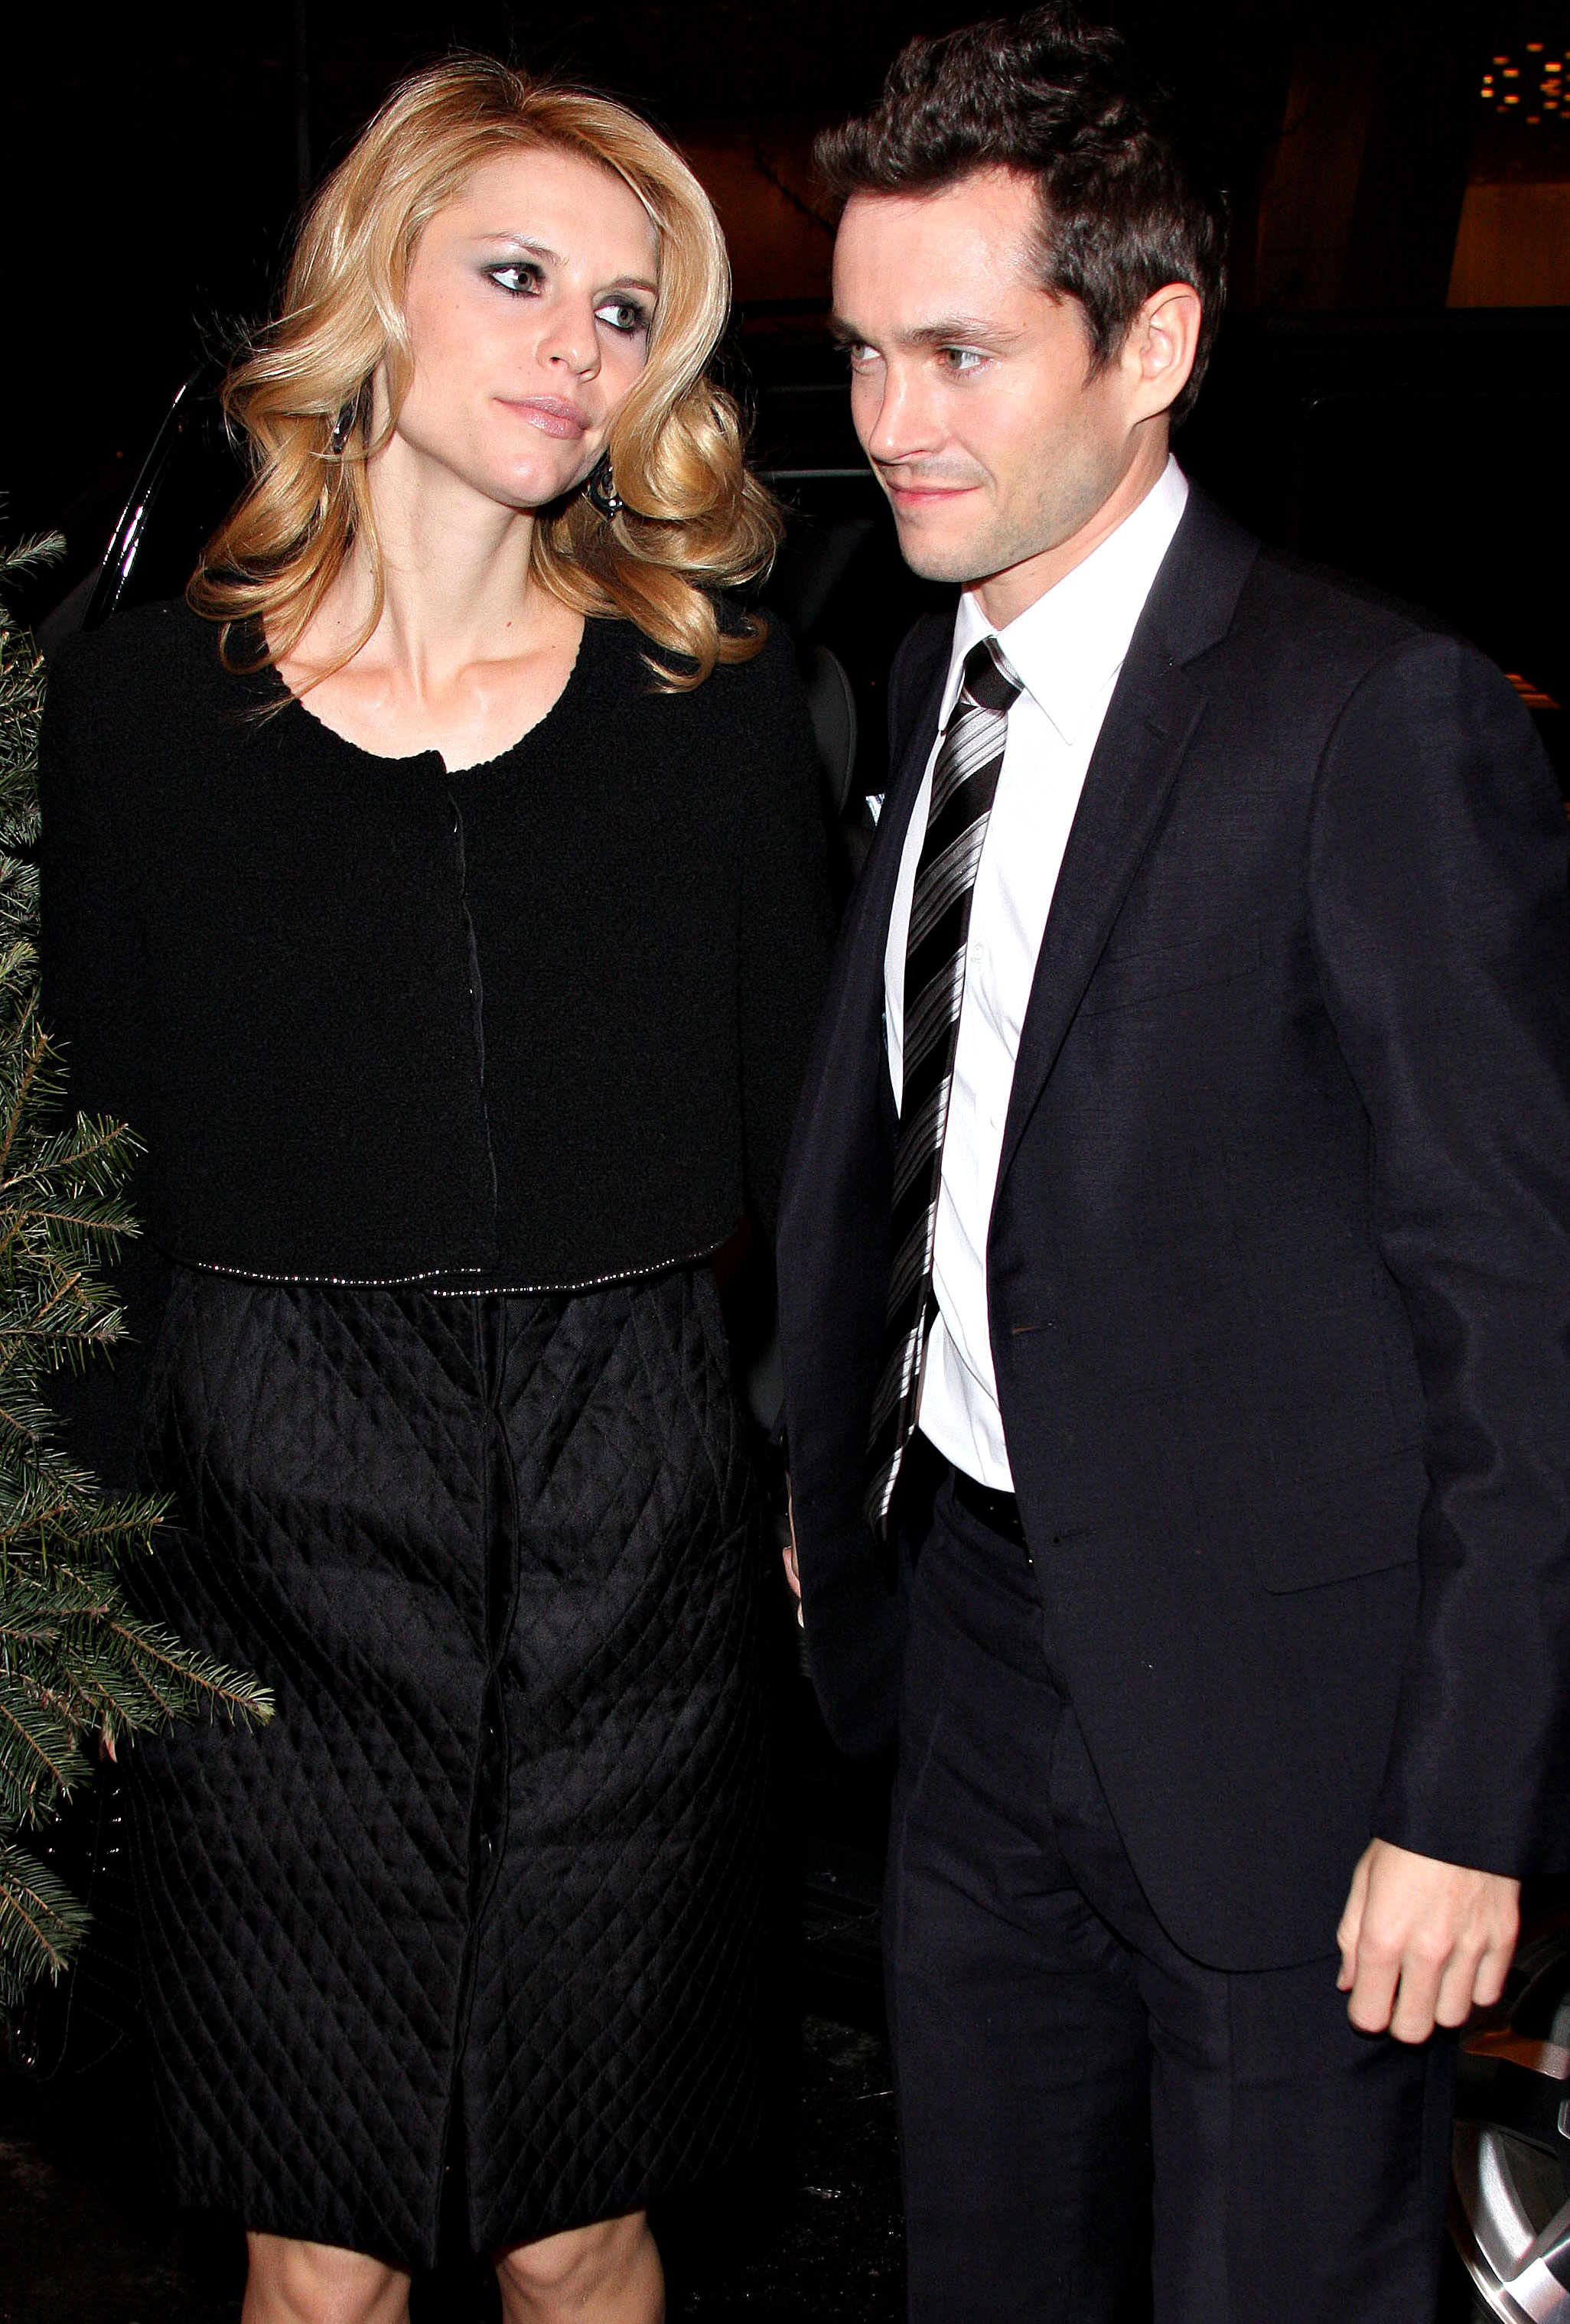 Claire Danes & Hugh Dancy: From Evening Wear to Wedding Apparel